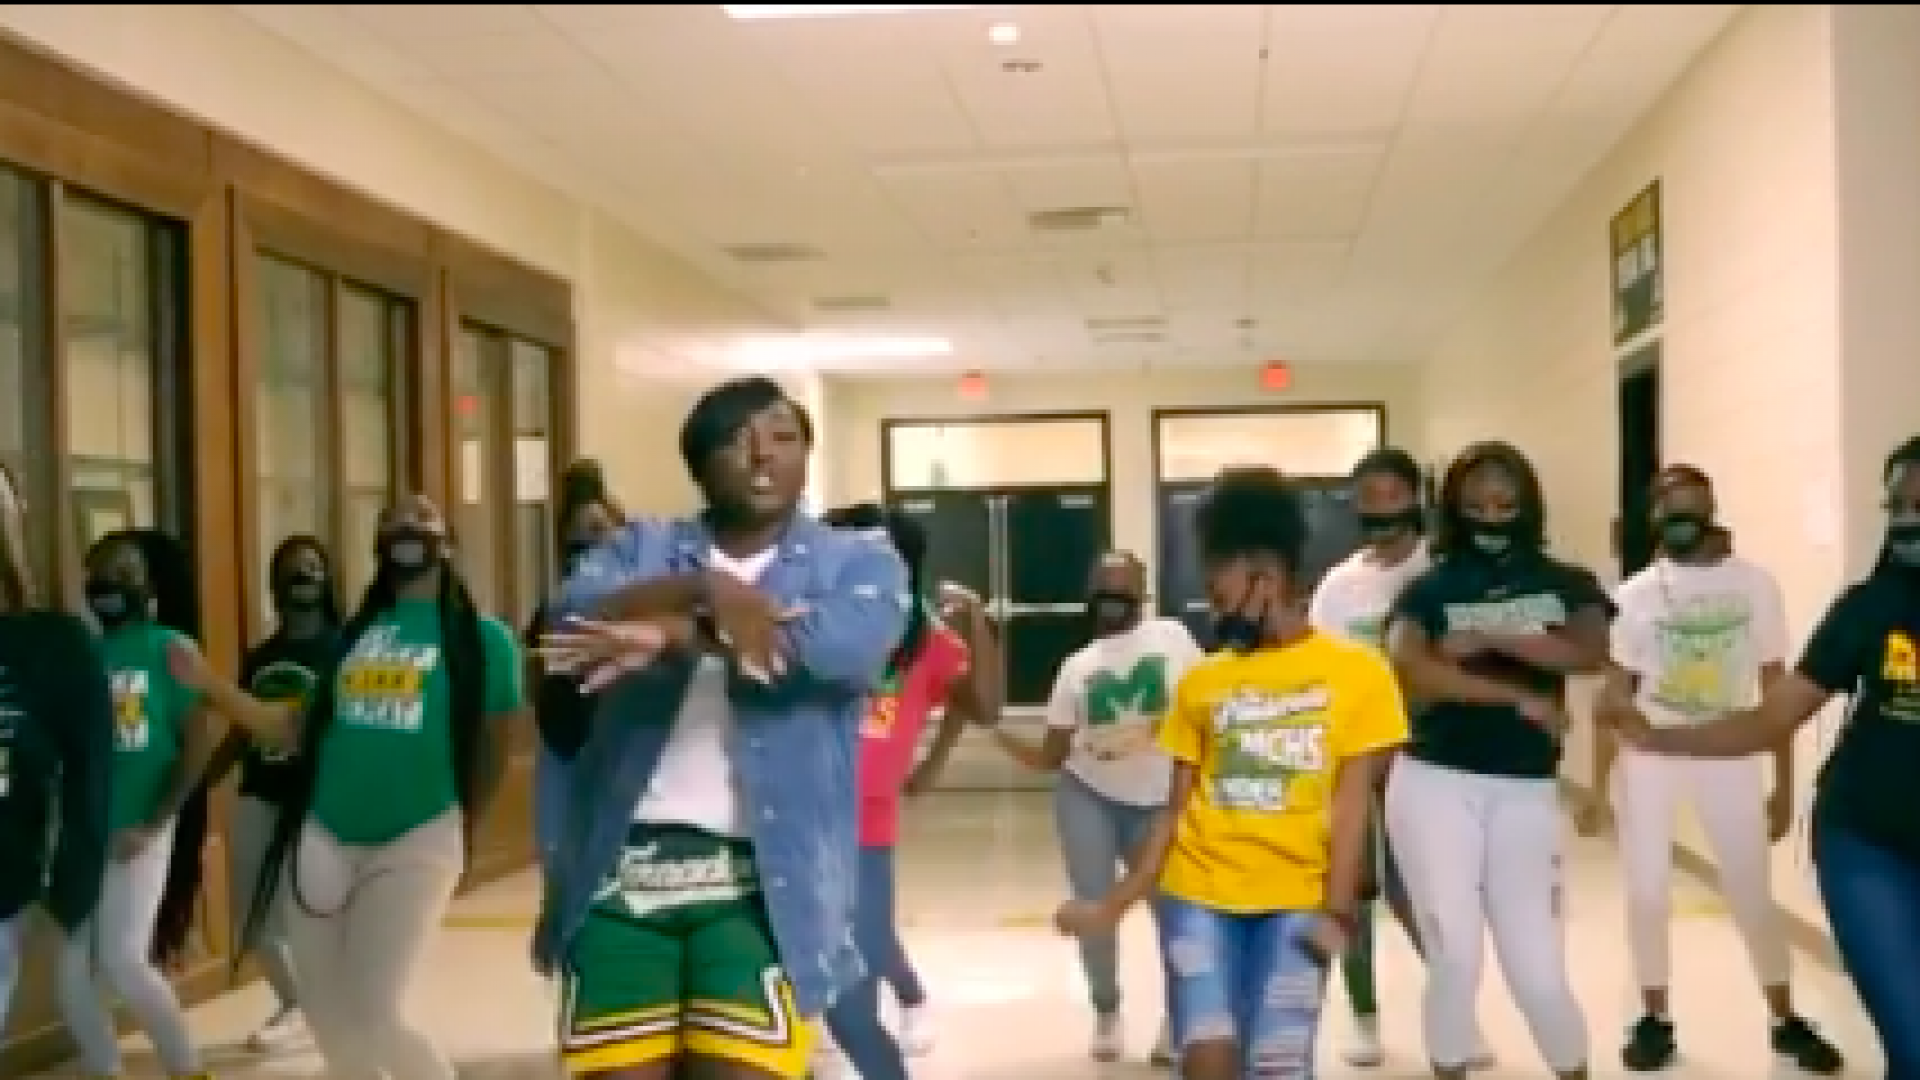 Georgia High School Teachers Welcome Students To Virtual Learning In Viral Video